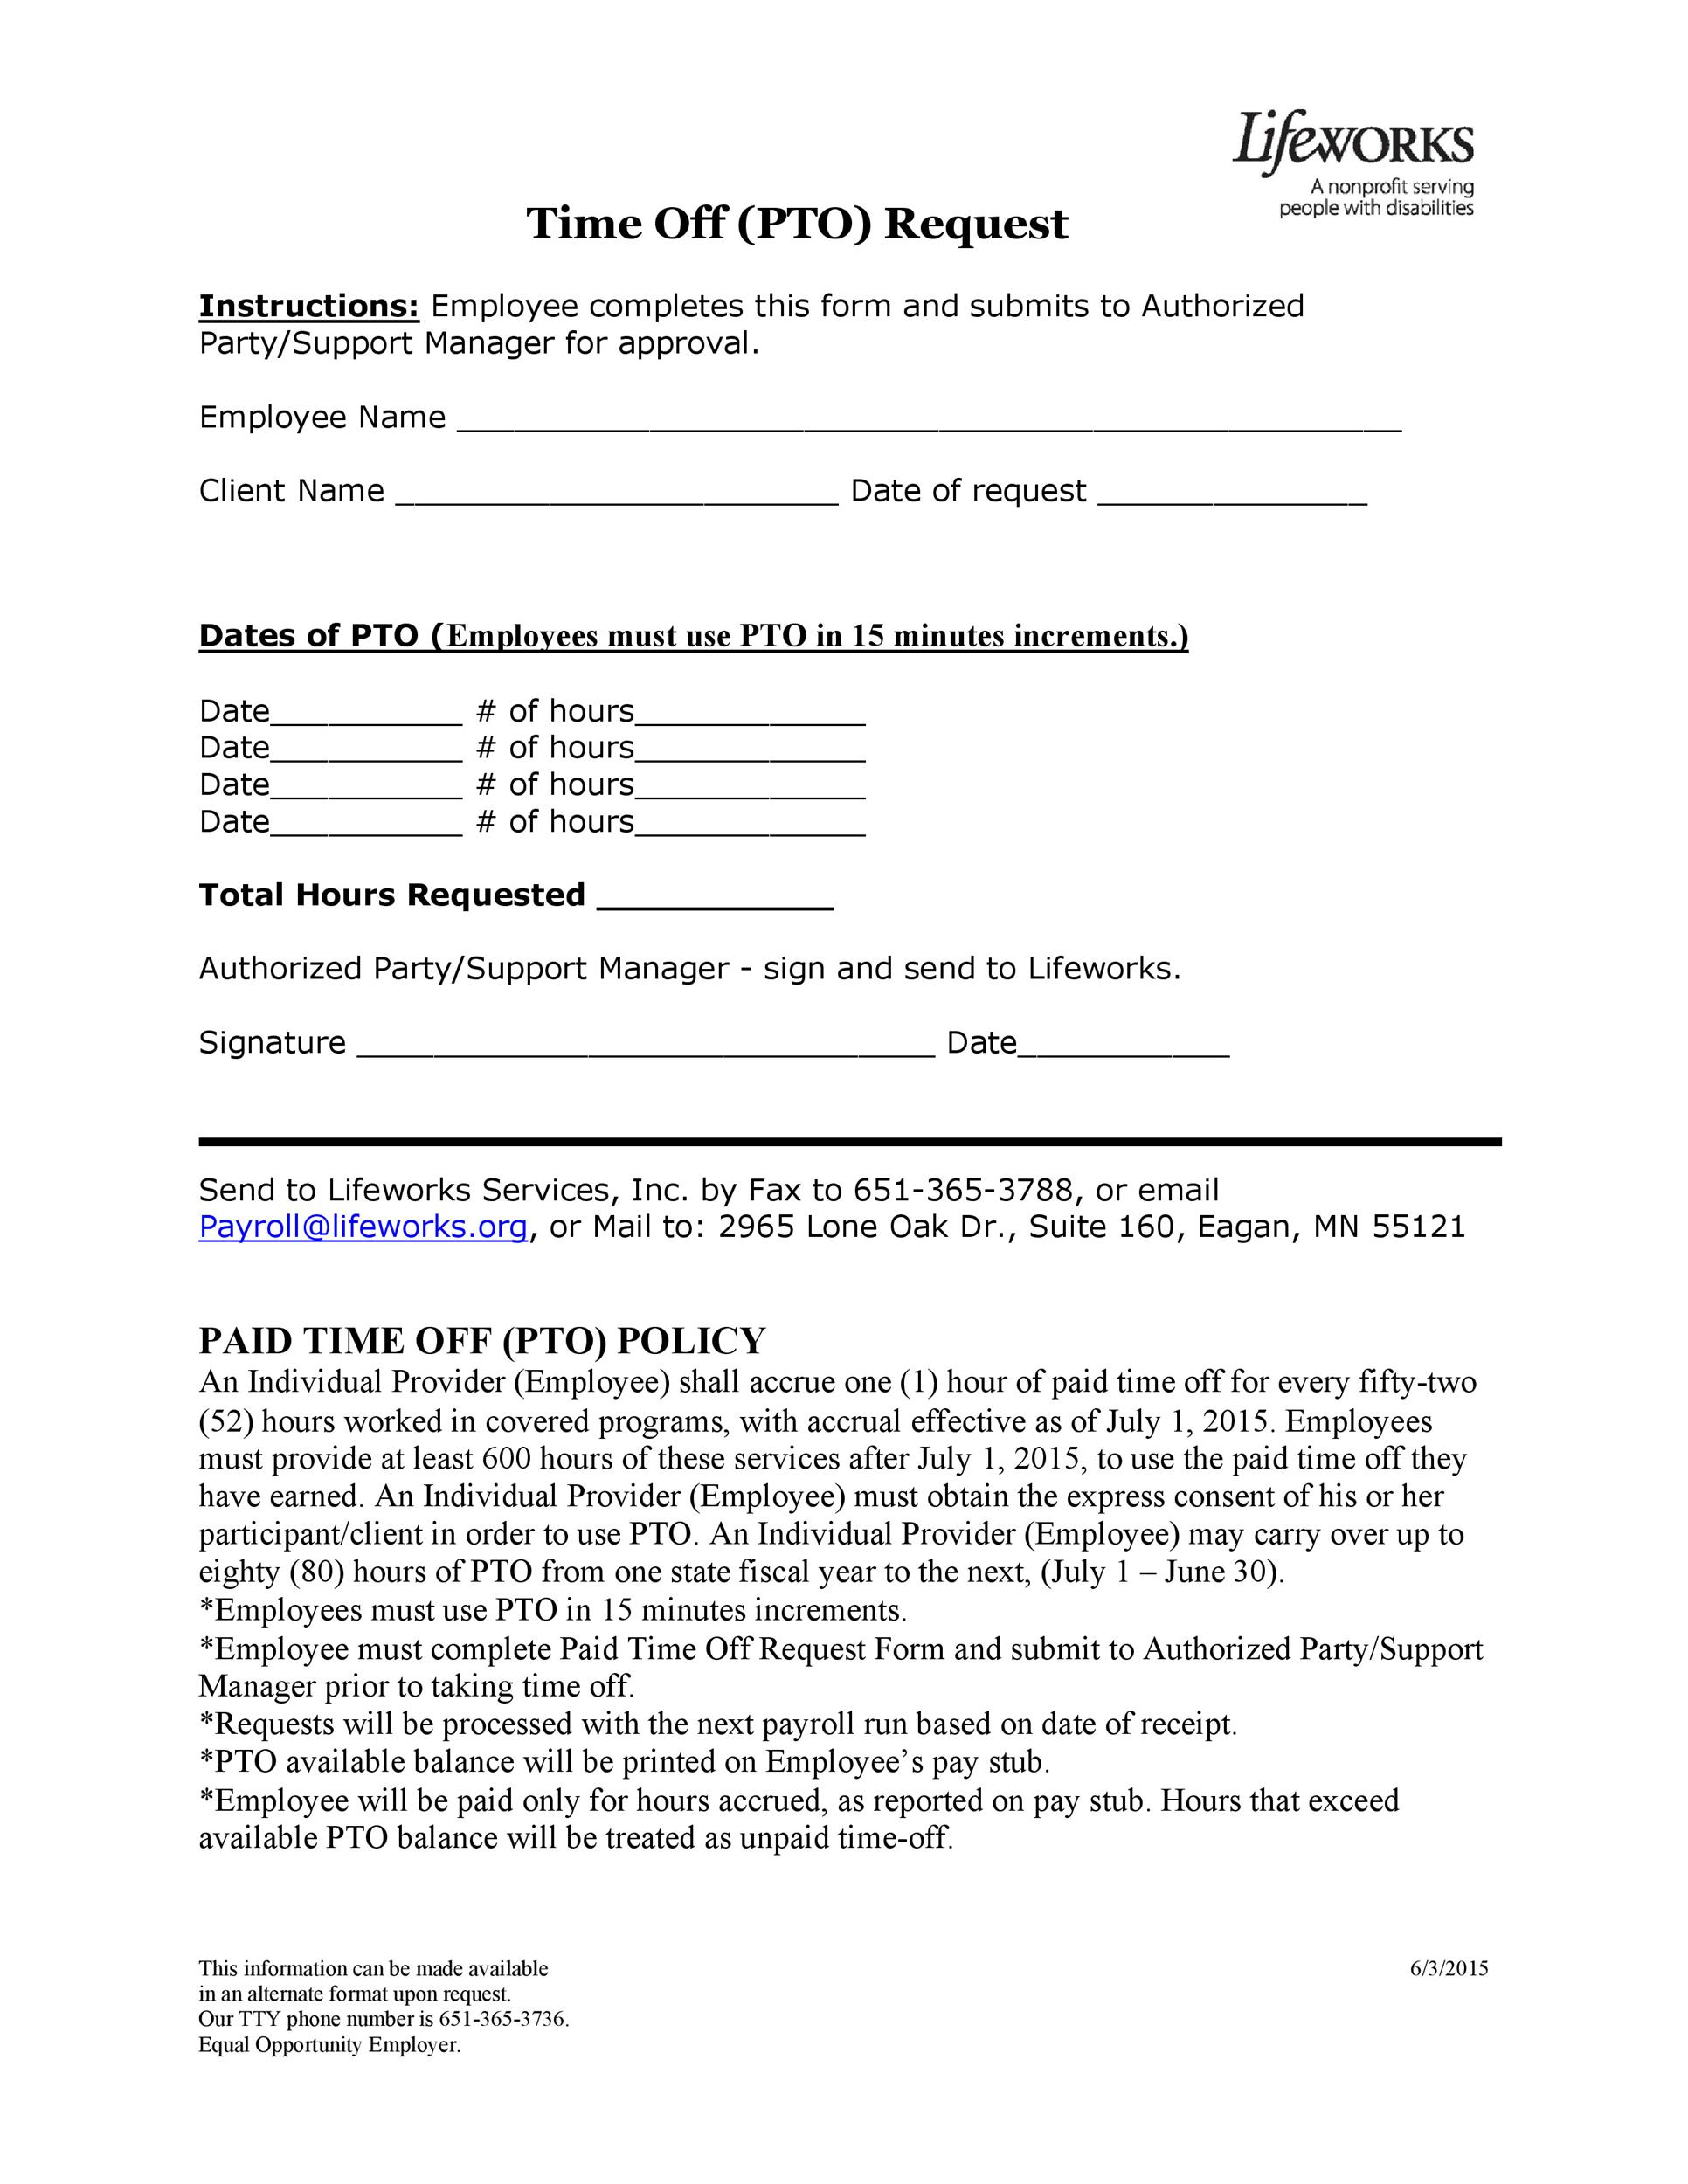 Free time off request form template 20